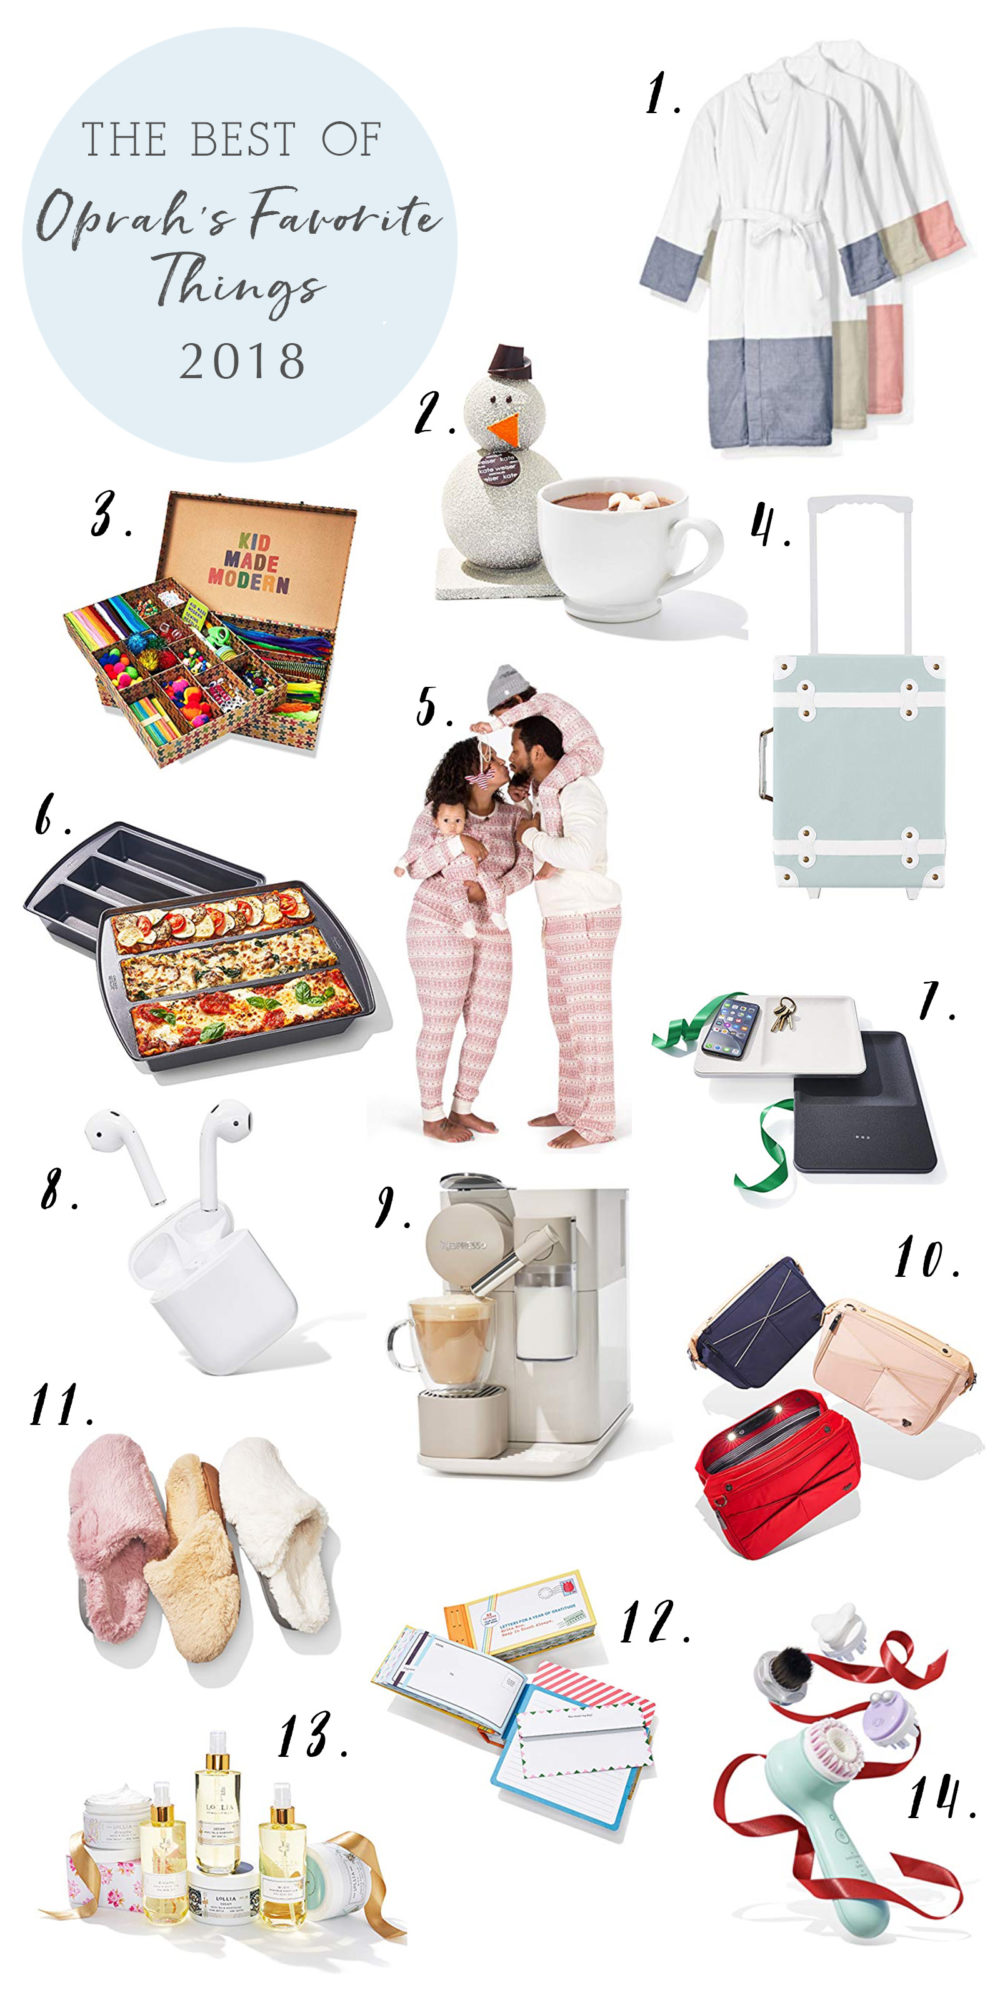 Petite Fashion Blog | Oprah's Favorite Things 2018